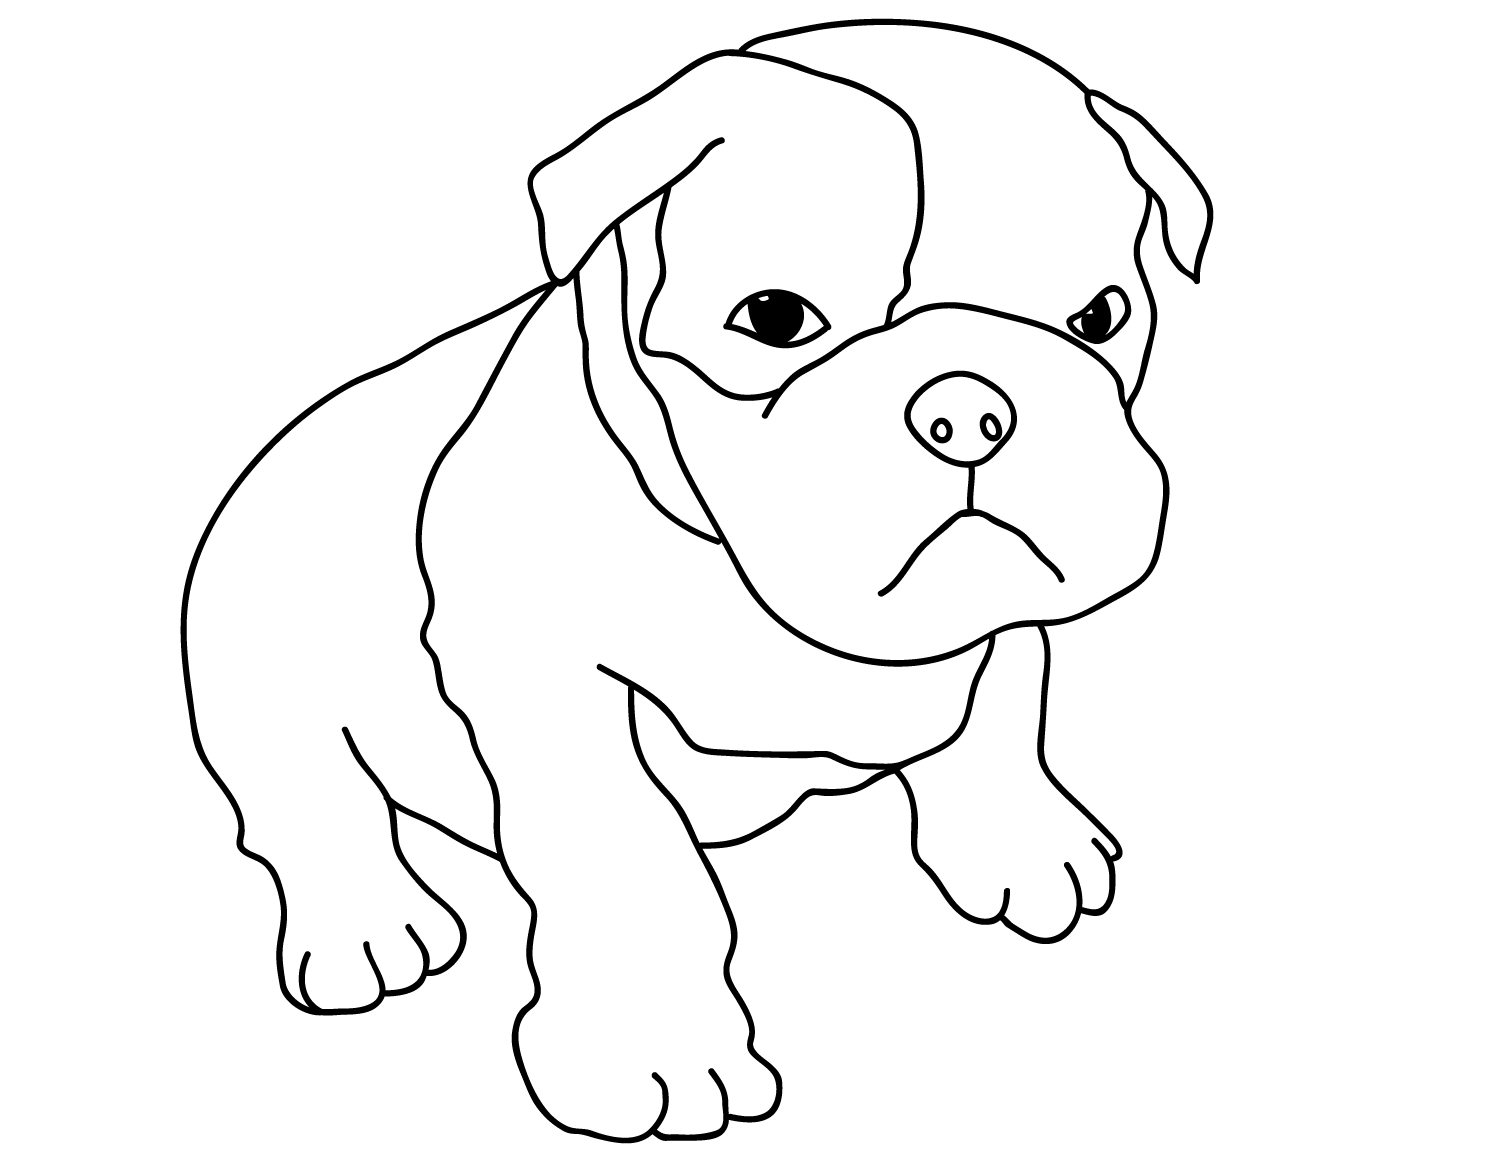 little dog coloring pages funny little dog coloring page color luna dog little pages coloring